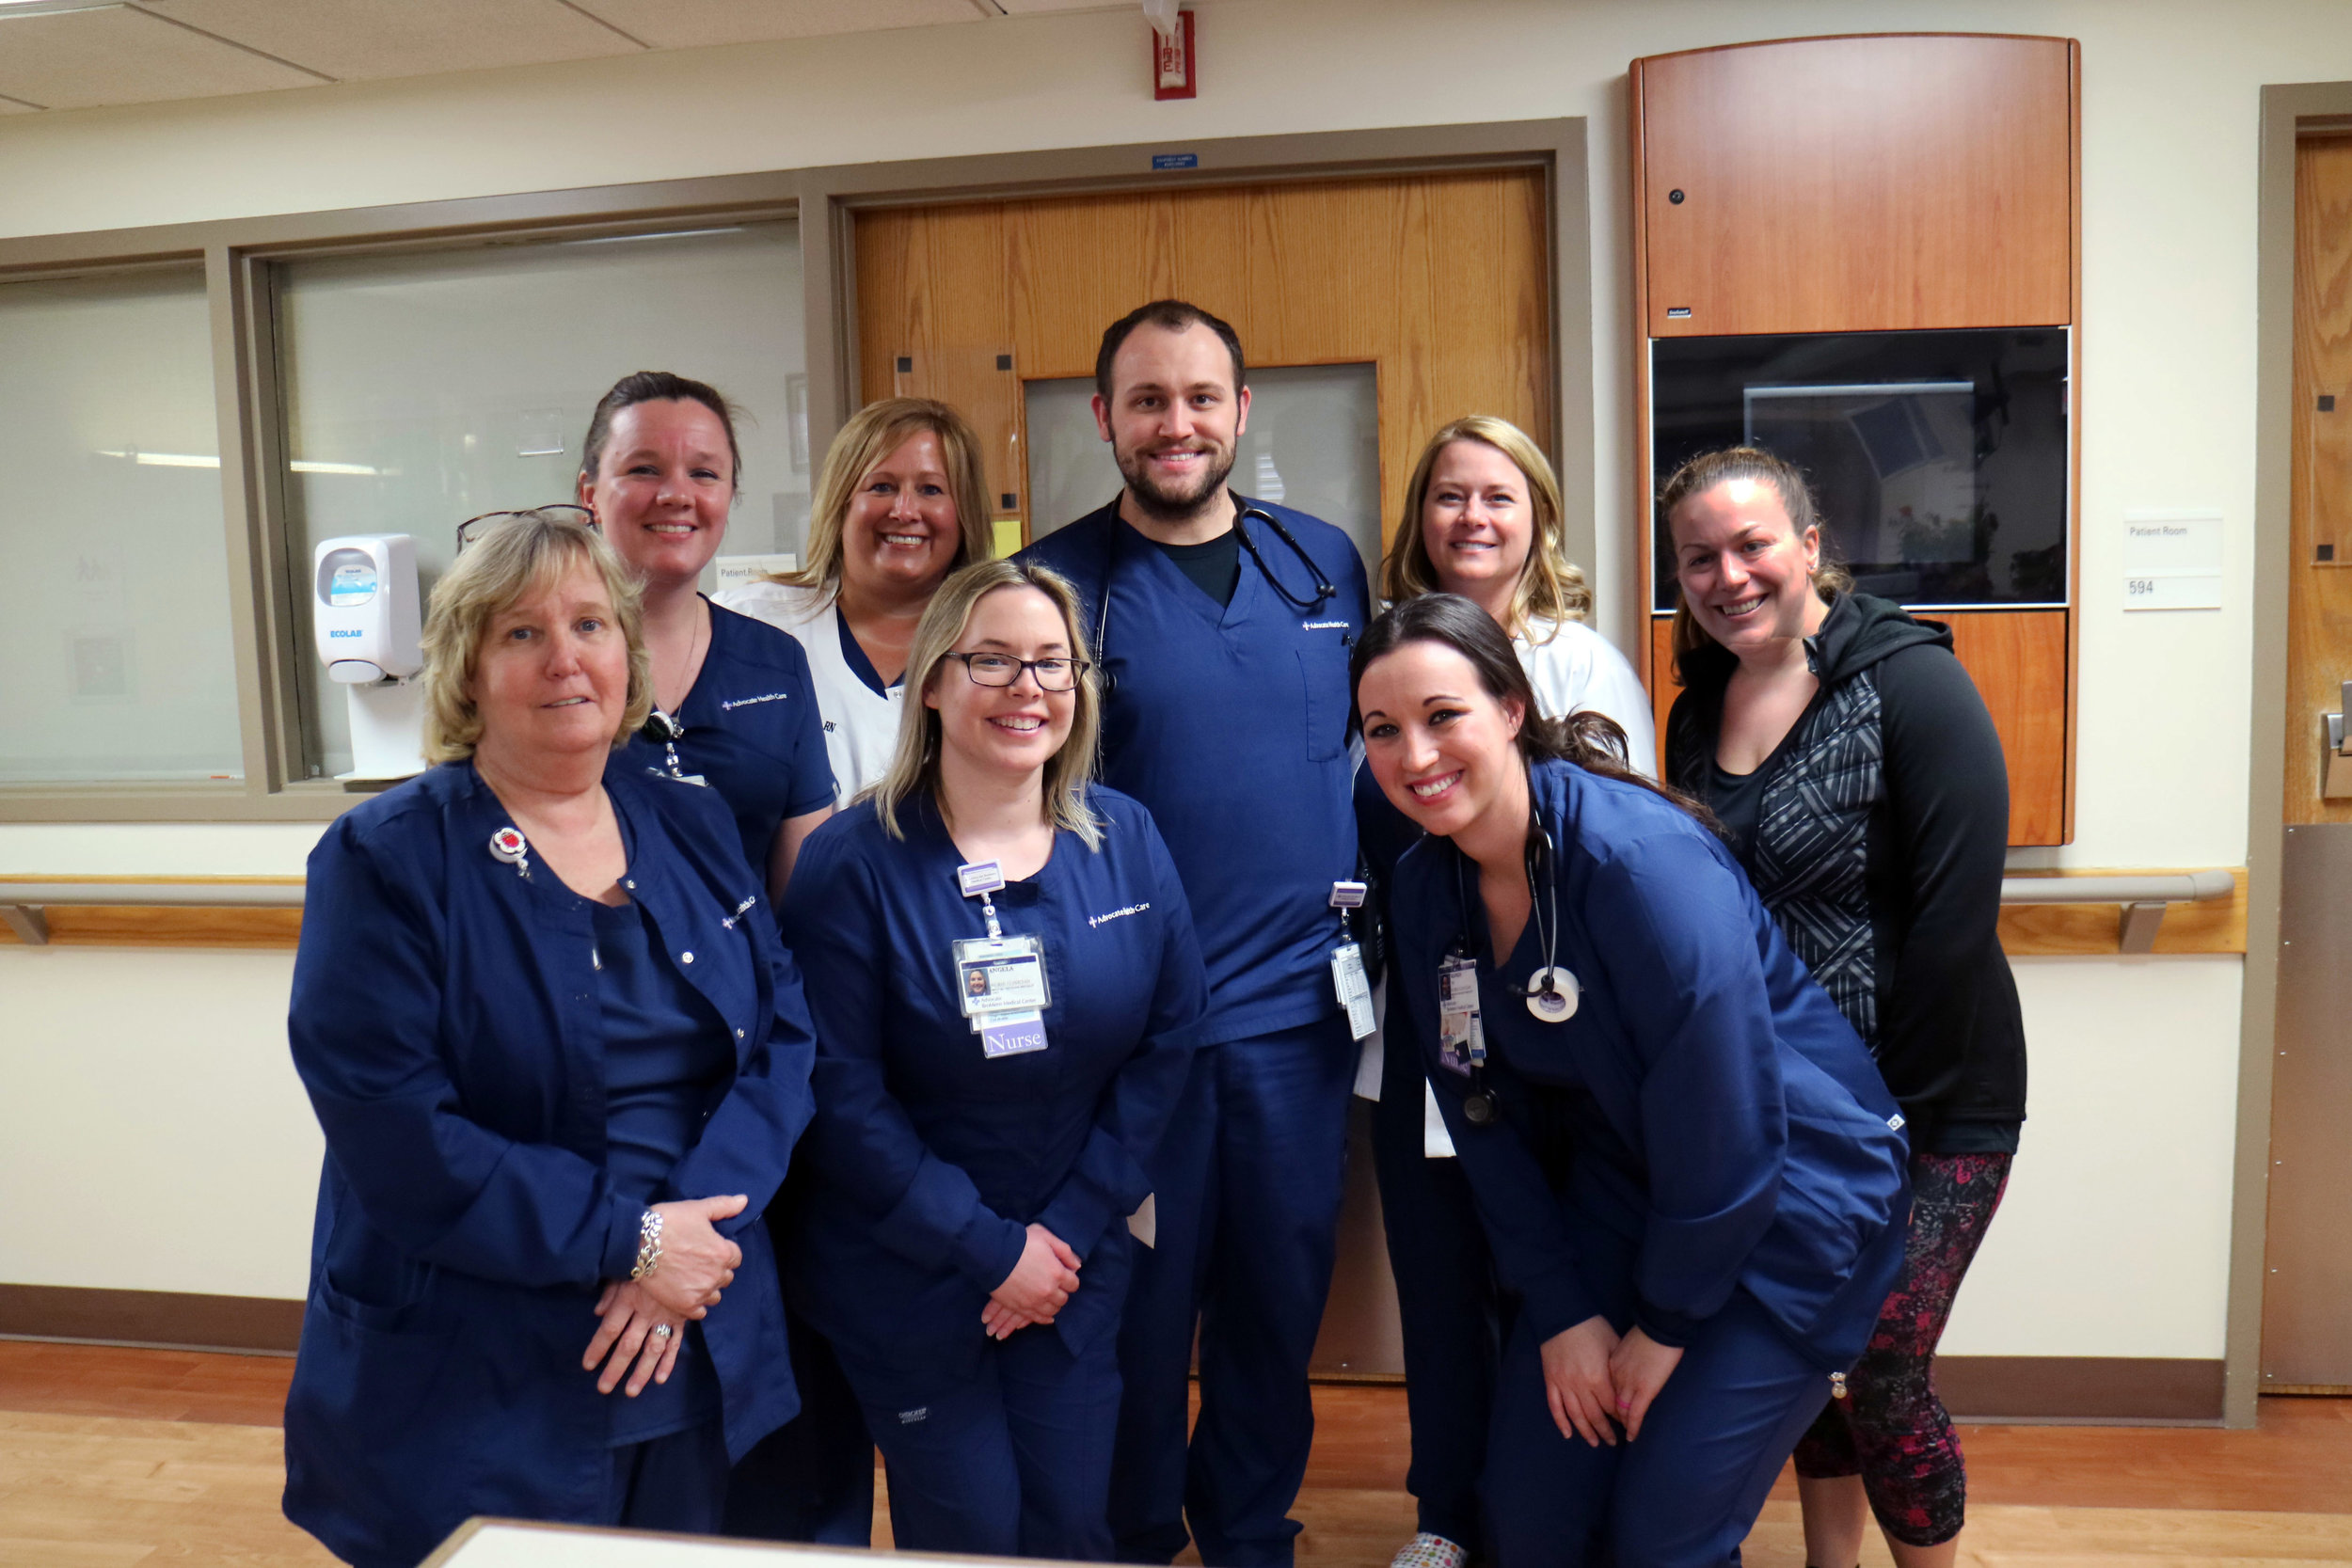 Normal's Advocate BroMenn Medical Center was named among the 2018 Best Places to Work in Healthcare by a leading industry magazine. Pictured: staff from the Medical-Oncology Specialty Unit at BroMenn. (Photo: Advocate BroMenn Medical Center)